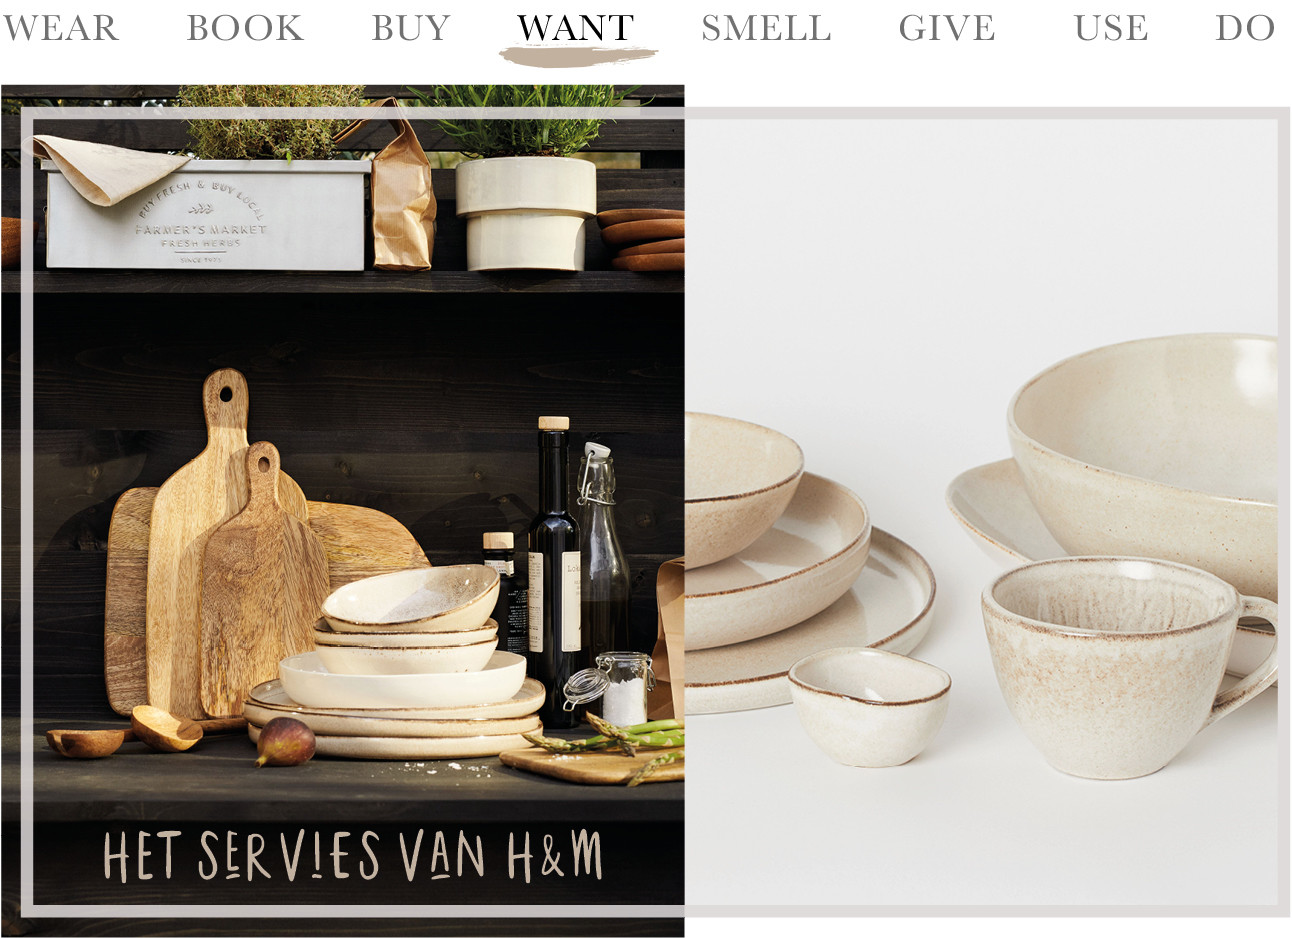 Today we want het servies van H&M